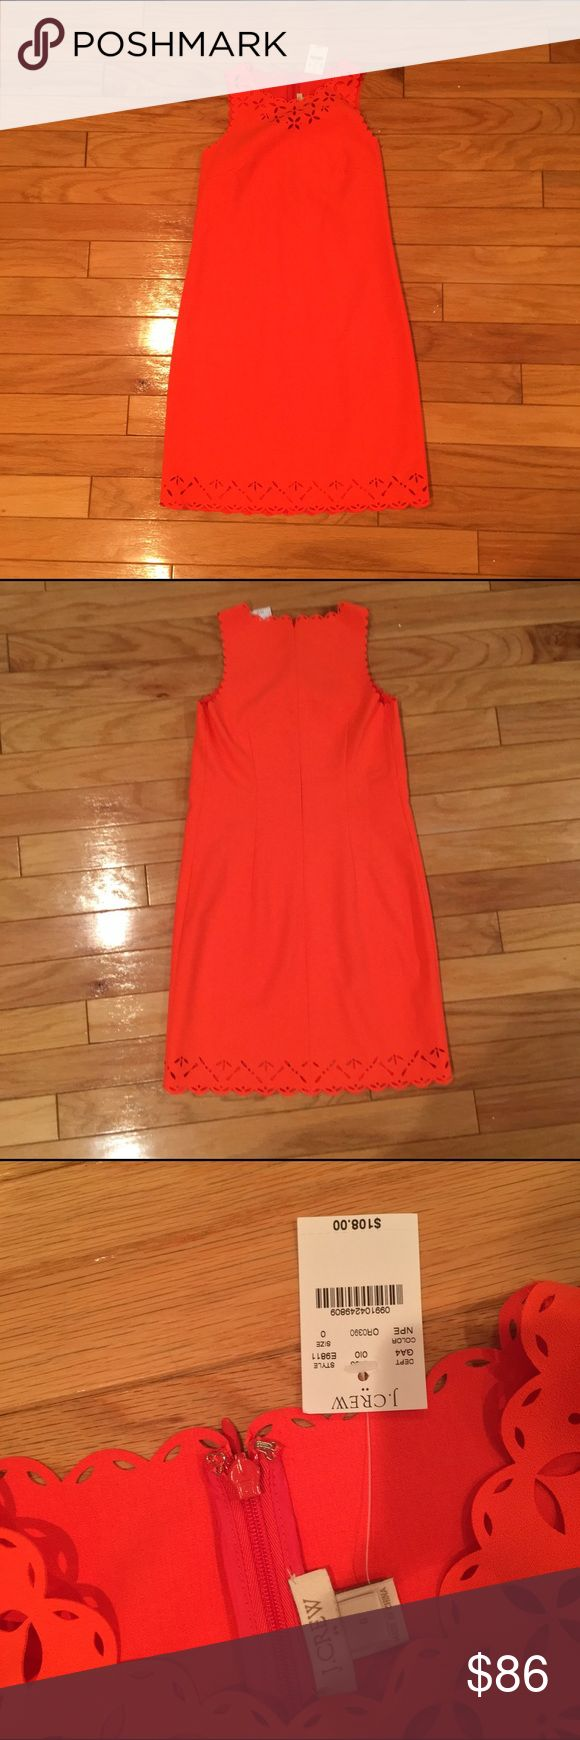 NWT J Crew 0 Coral Laser-Cut Floral Dress NWT J Crew 0 Laser-cut floral dress. Poly/elastane blend, falls to knee, back zip with hook-and-eye closure, lined. Dry clean only. This light dress is perfect for any cocktail party or semi-formal outdoor event! But be careful, this style tends to run a bit big. J. Crew Dresses Mini